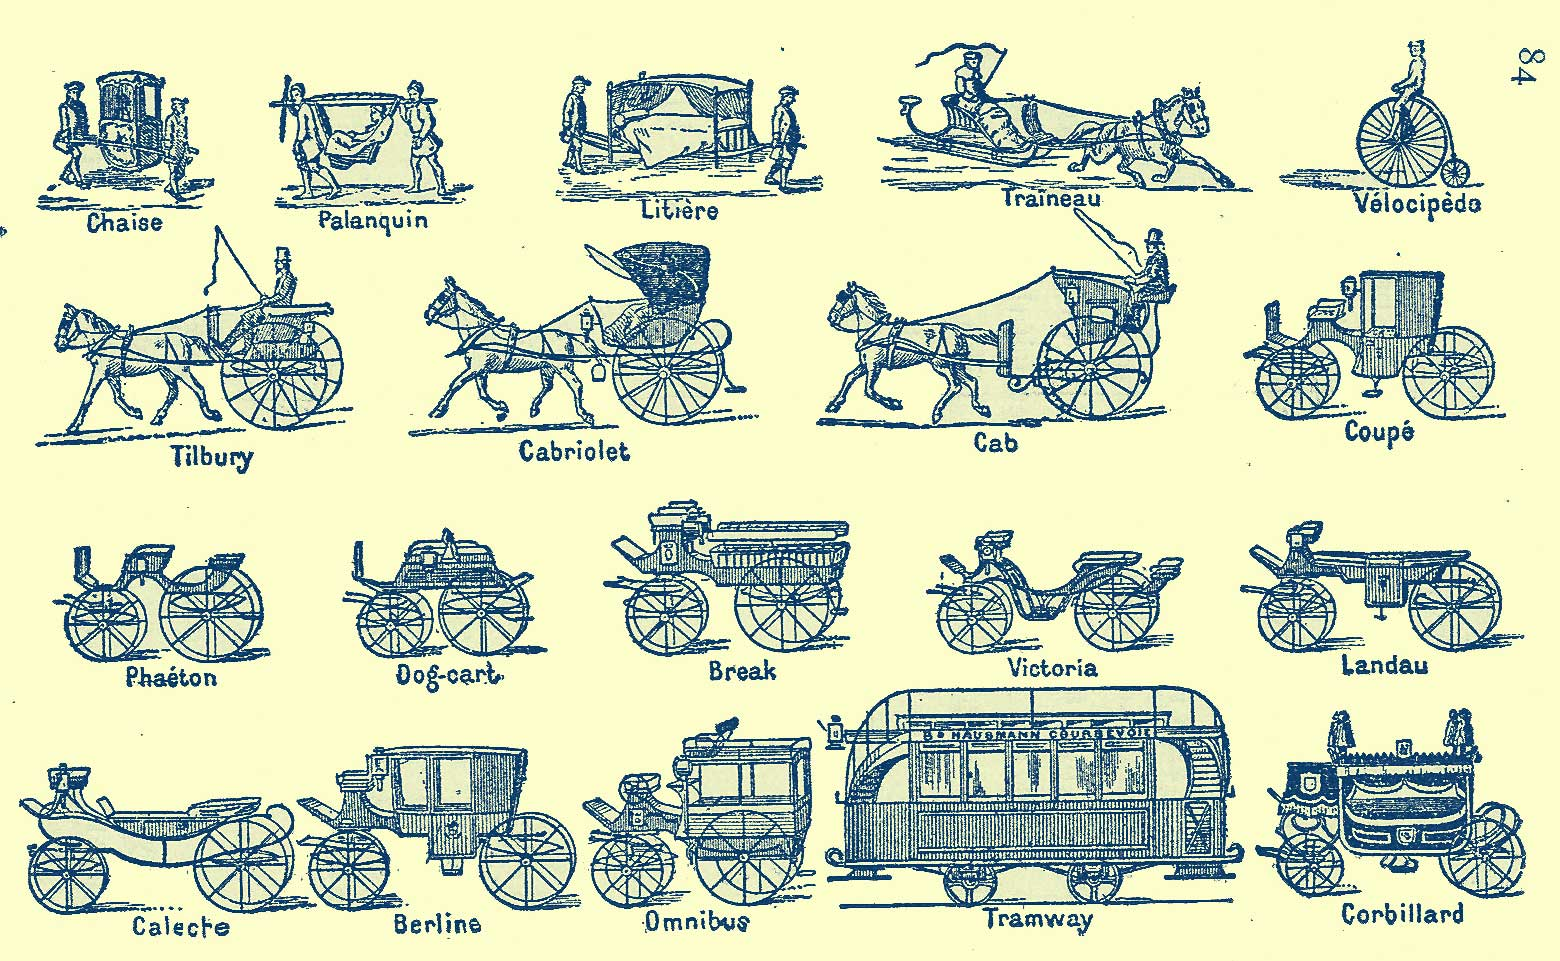 picture of different types of vehicles of the 19th century in France and names in French:  tilbury, victoria, cabriolet (English = gig), palanquin, velocipede, phaeton, chaise, landau, berlin, caleche (English = open carriage), break, corbillard, tramway, omnibus, coupe, litter, traineau (English = sleigh),